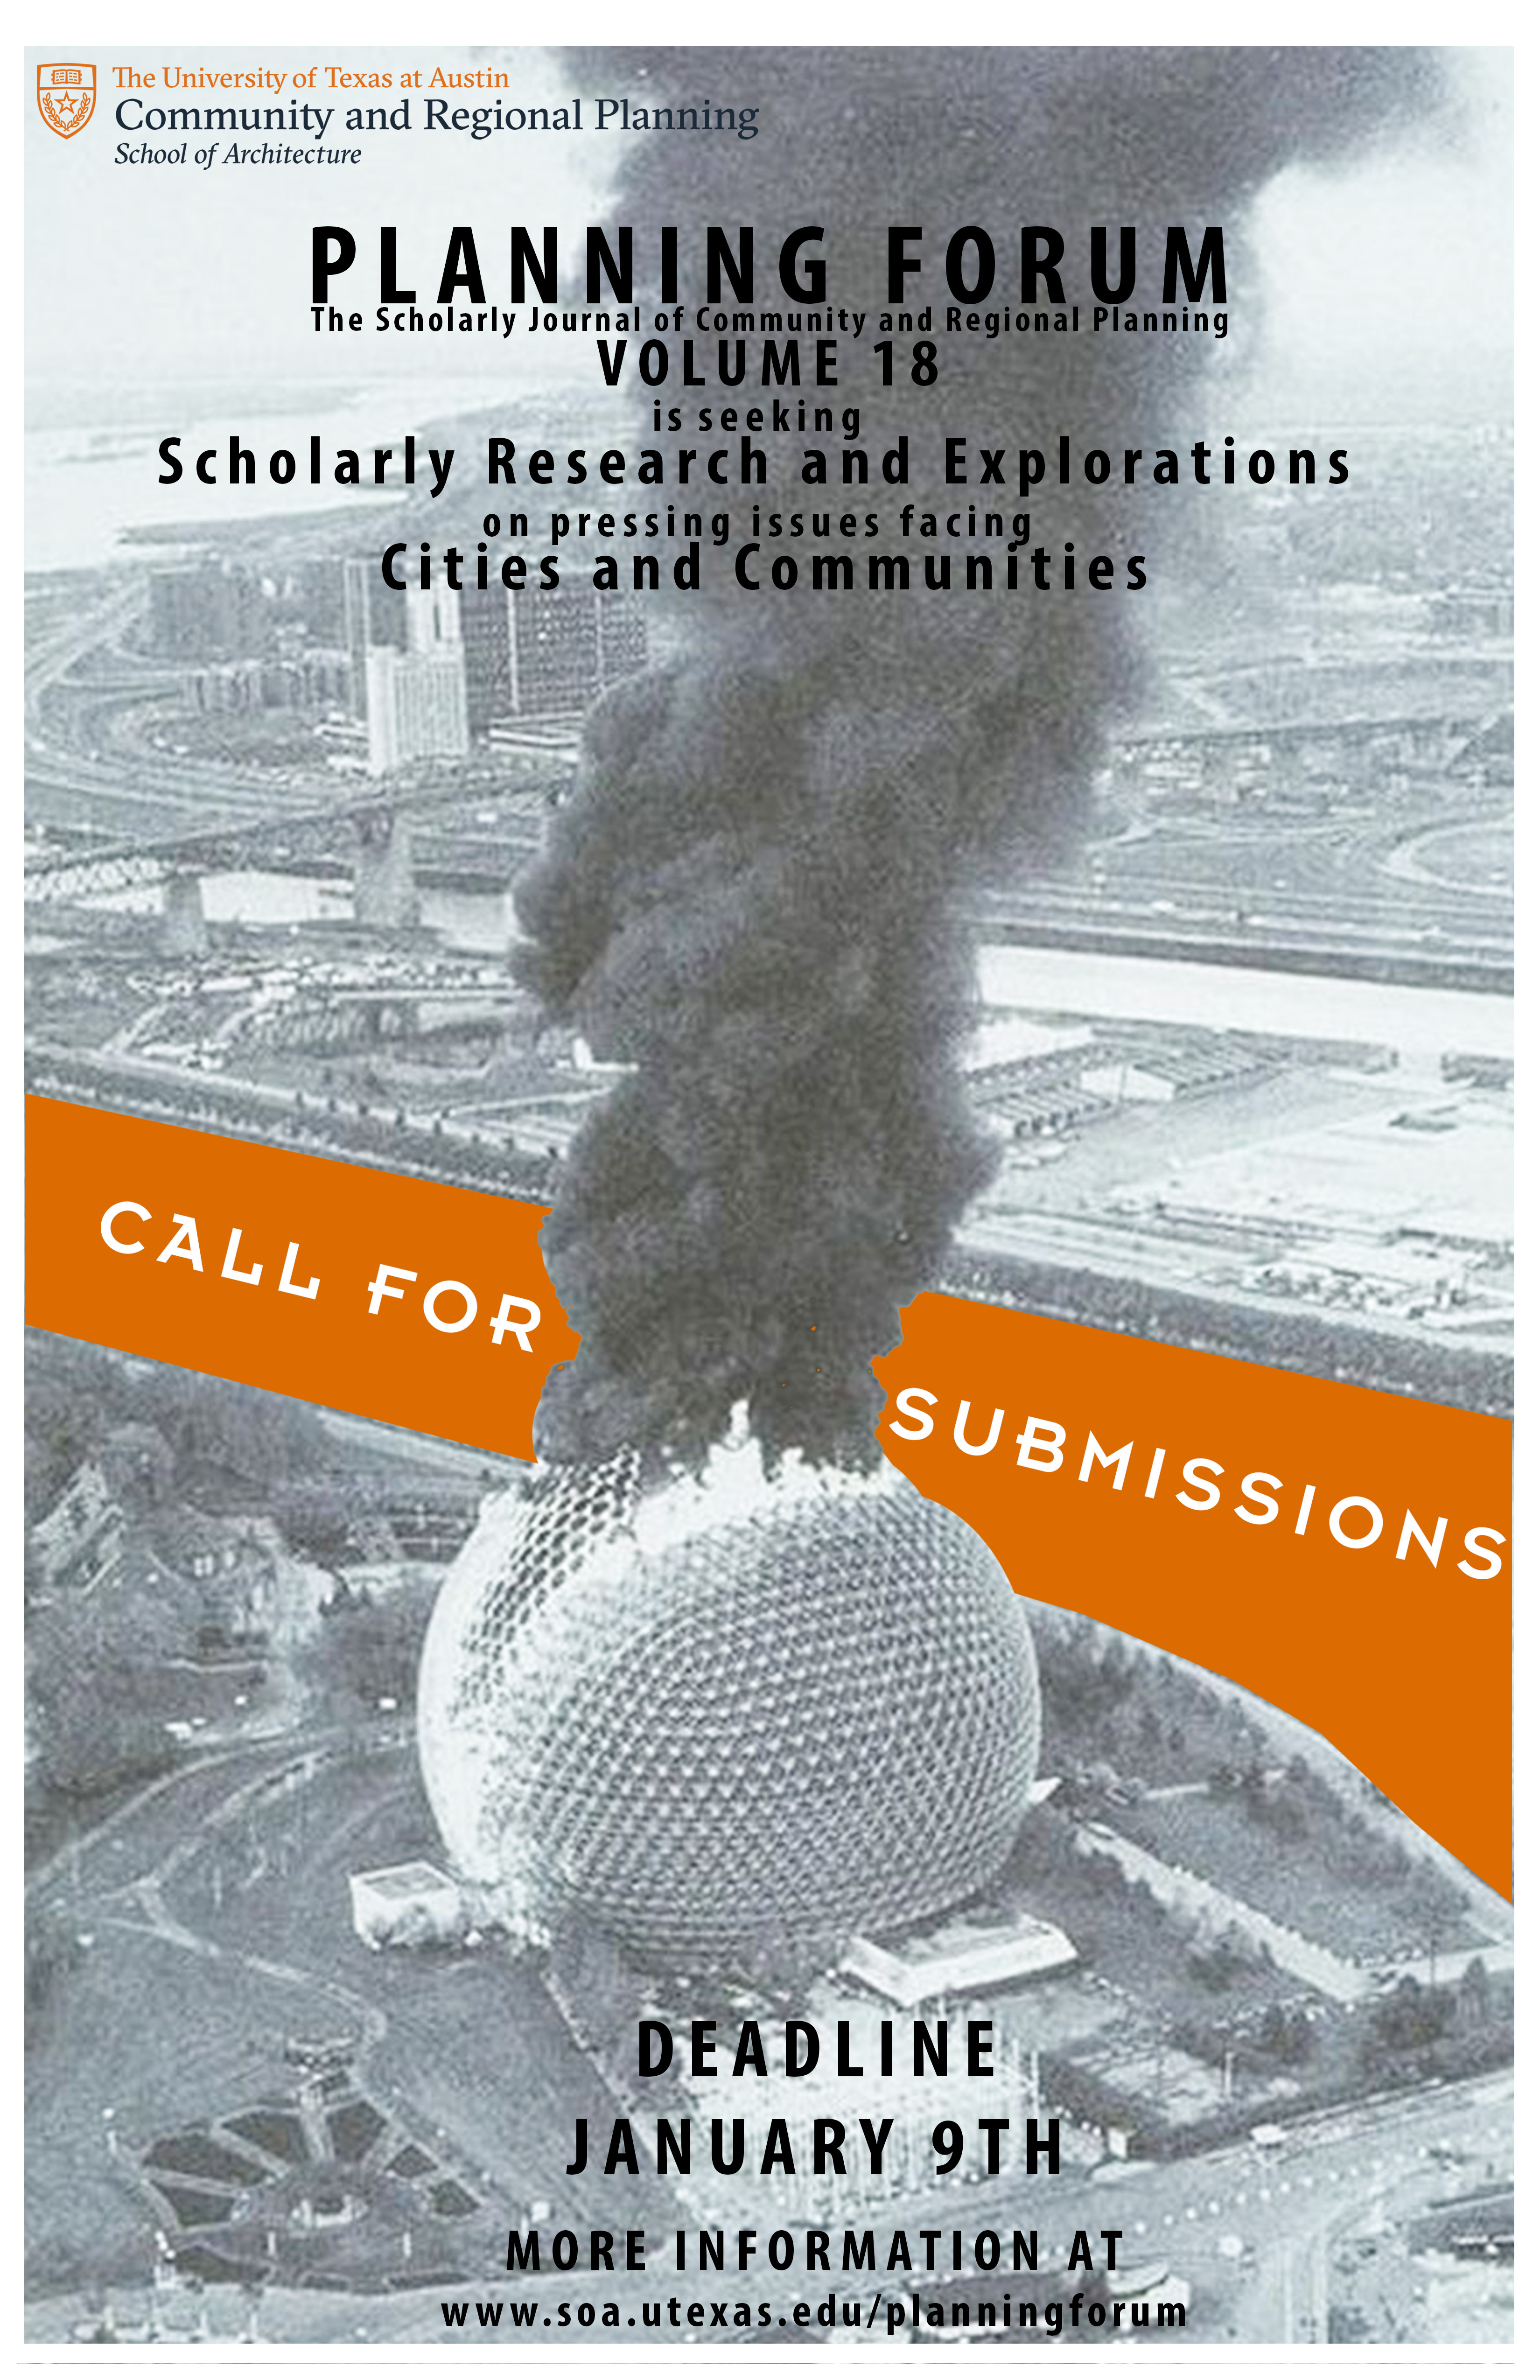 Call for Submissions Poster  @UTSOA